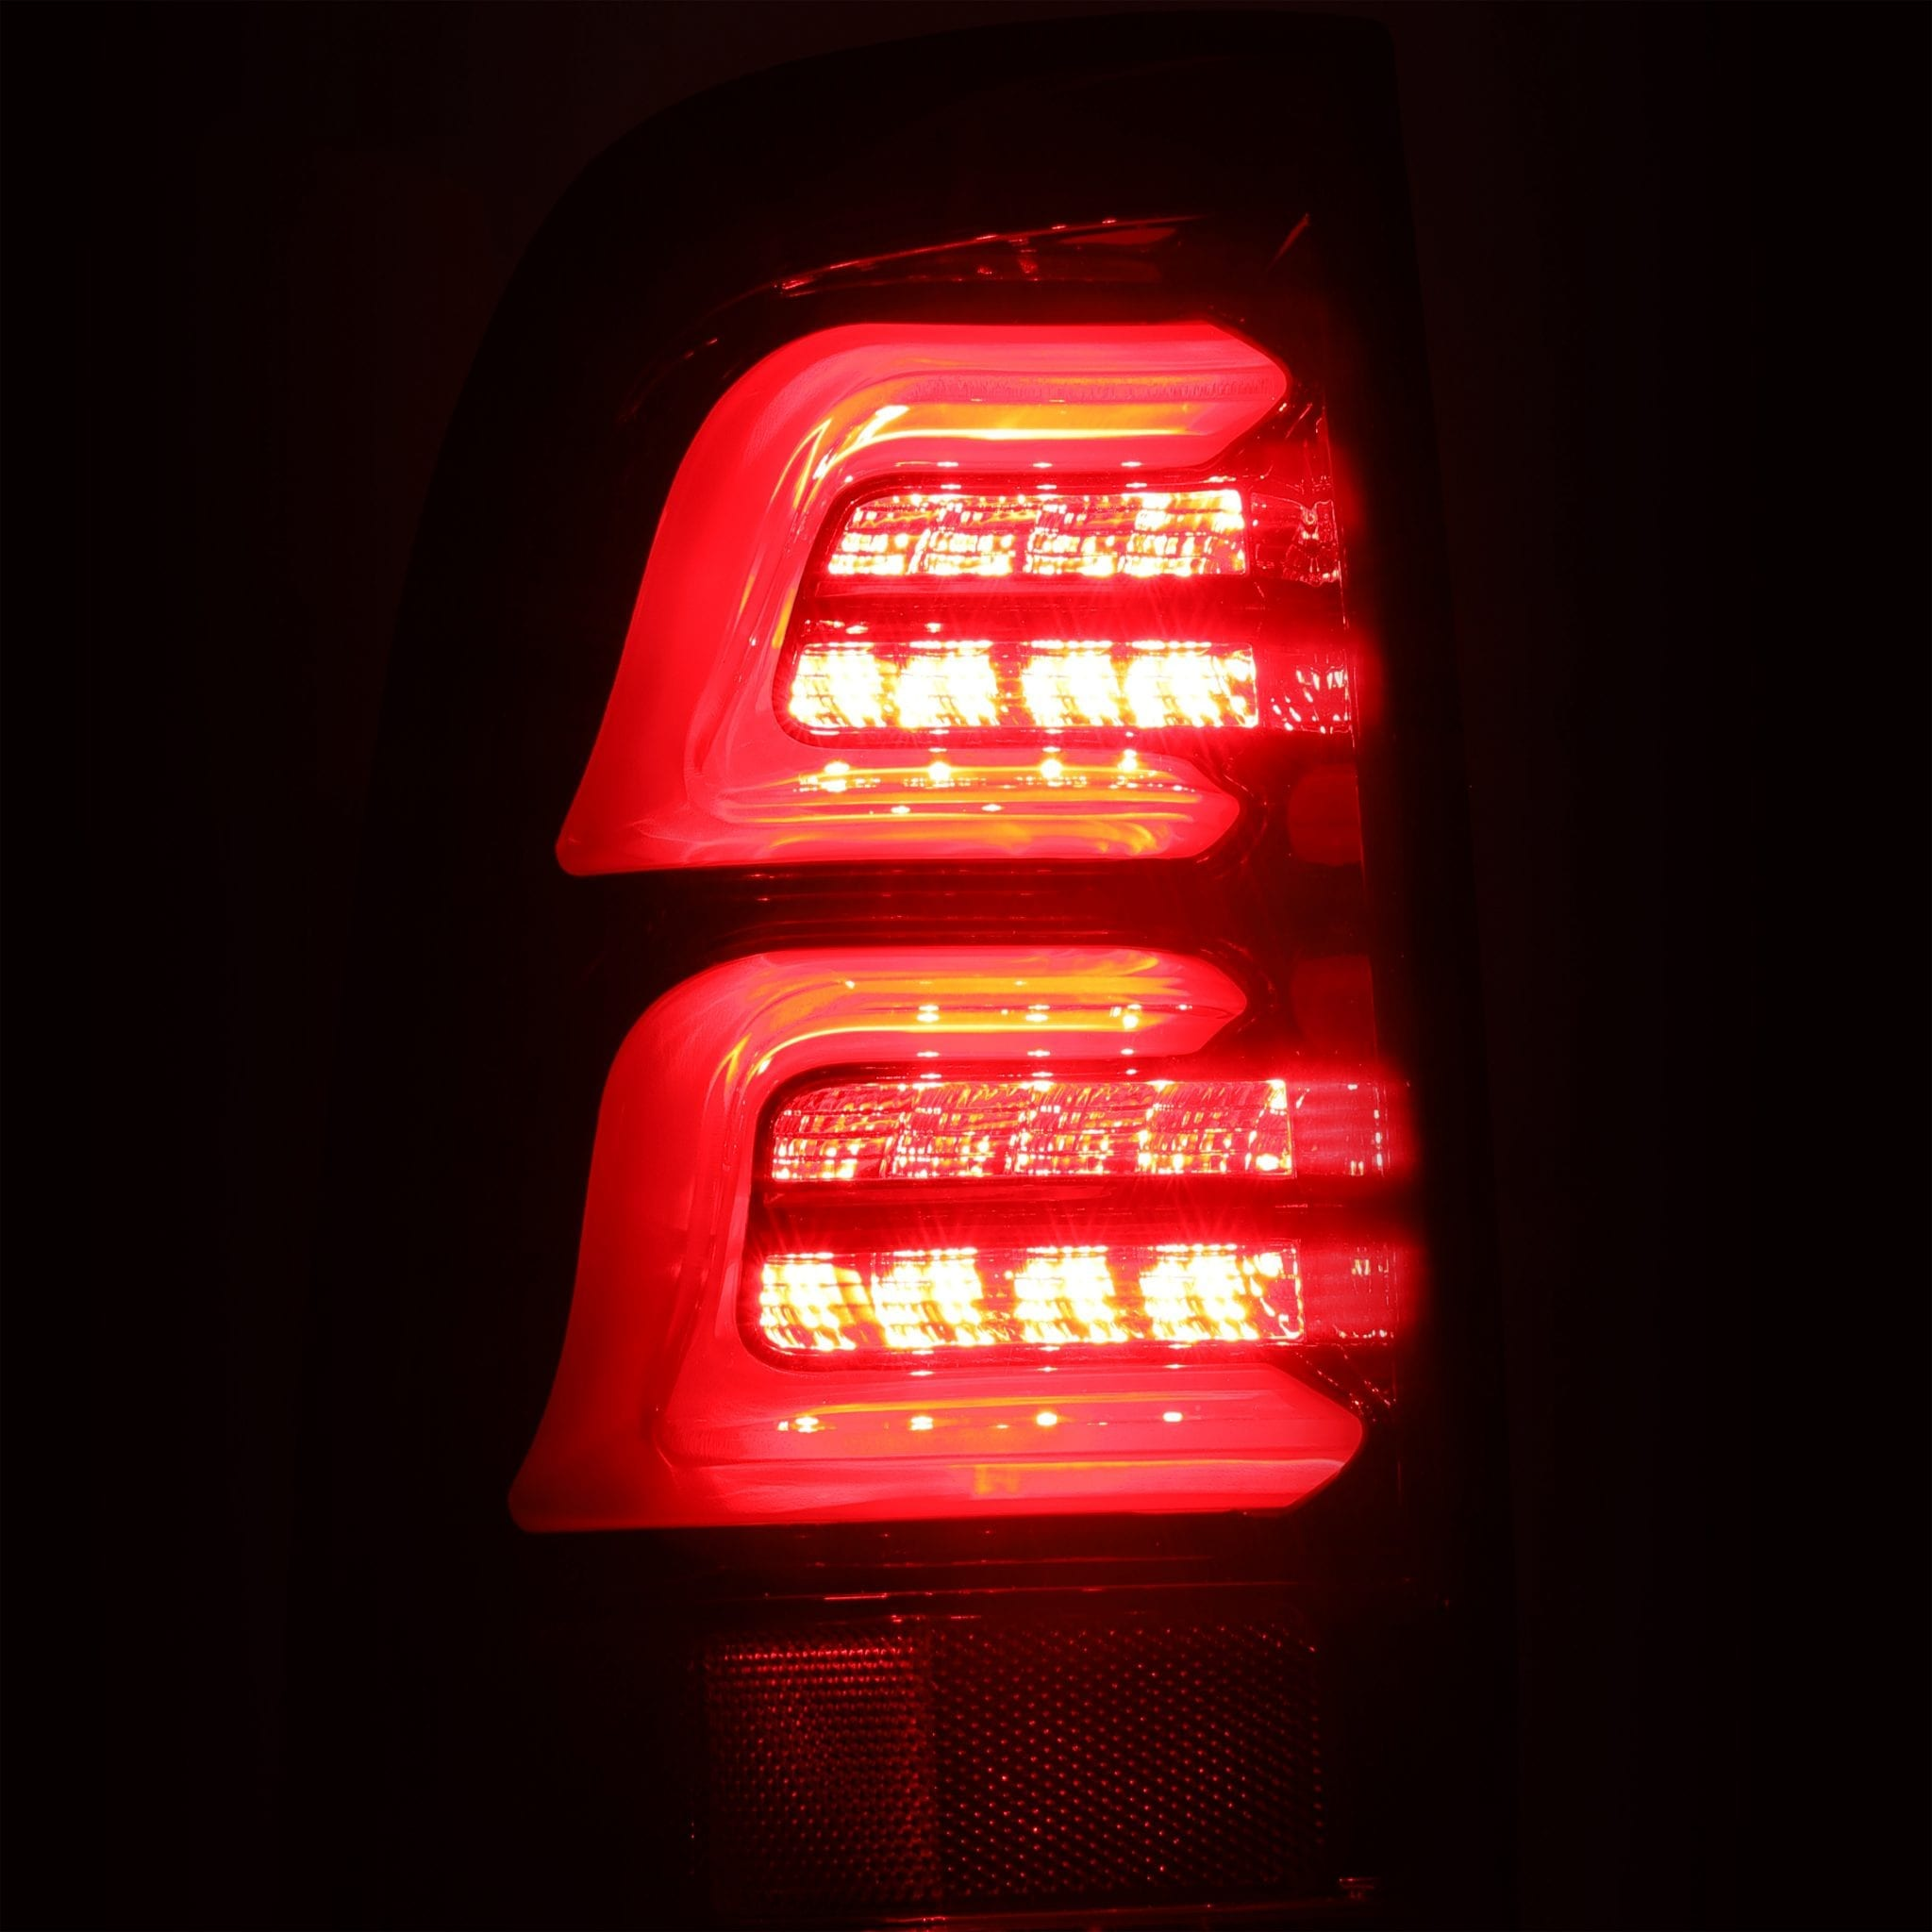 1997 1998 1999 2000 2001 2002 2003 2004 2005 2006 2007 2008 Ford F150/F250/F350 Super Duty PRO-Series LED Tail Lights Red Smoke